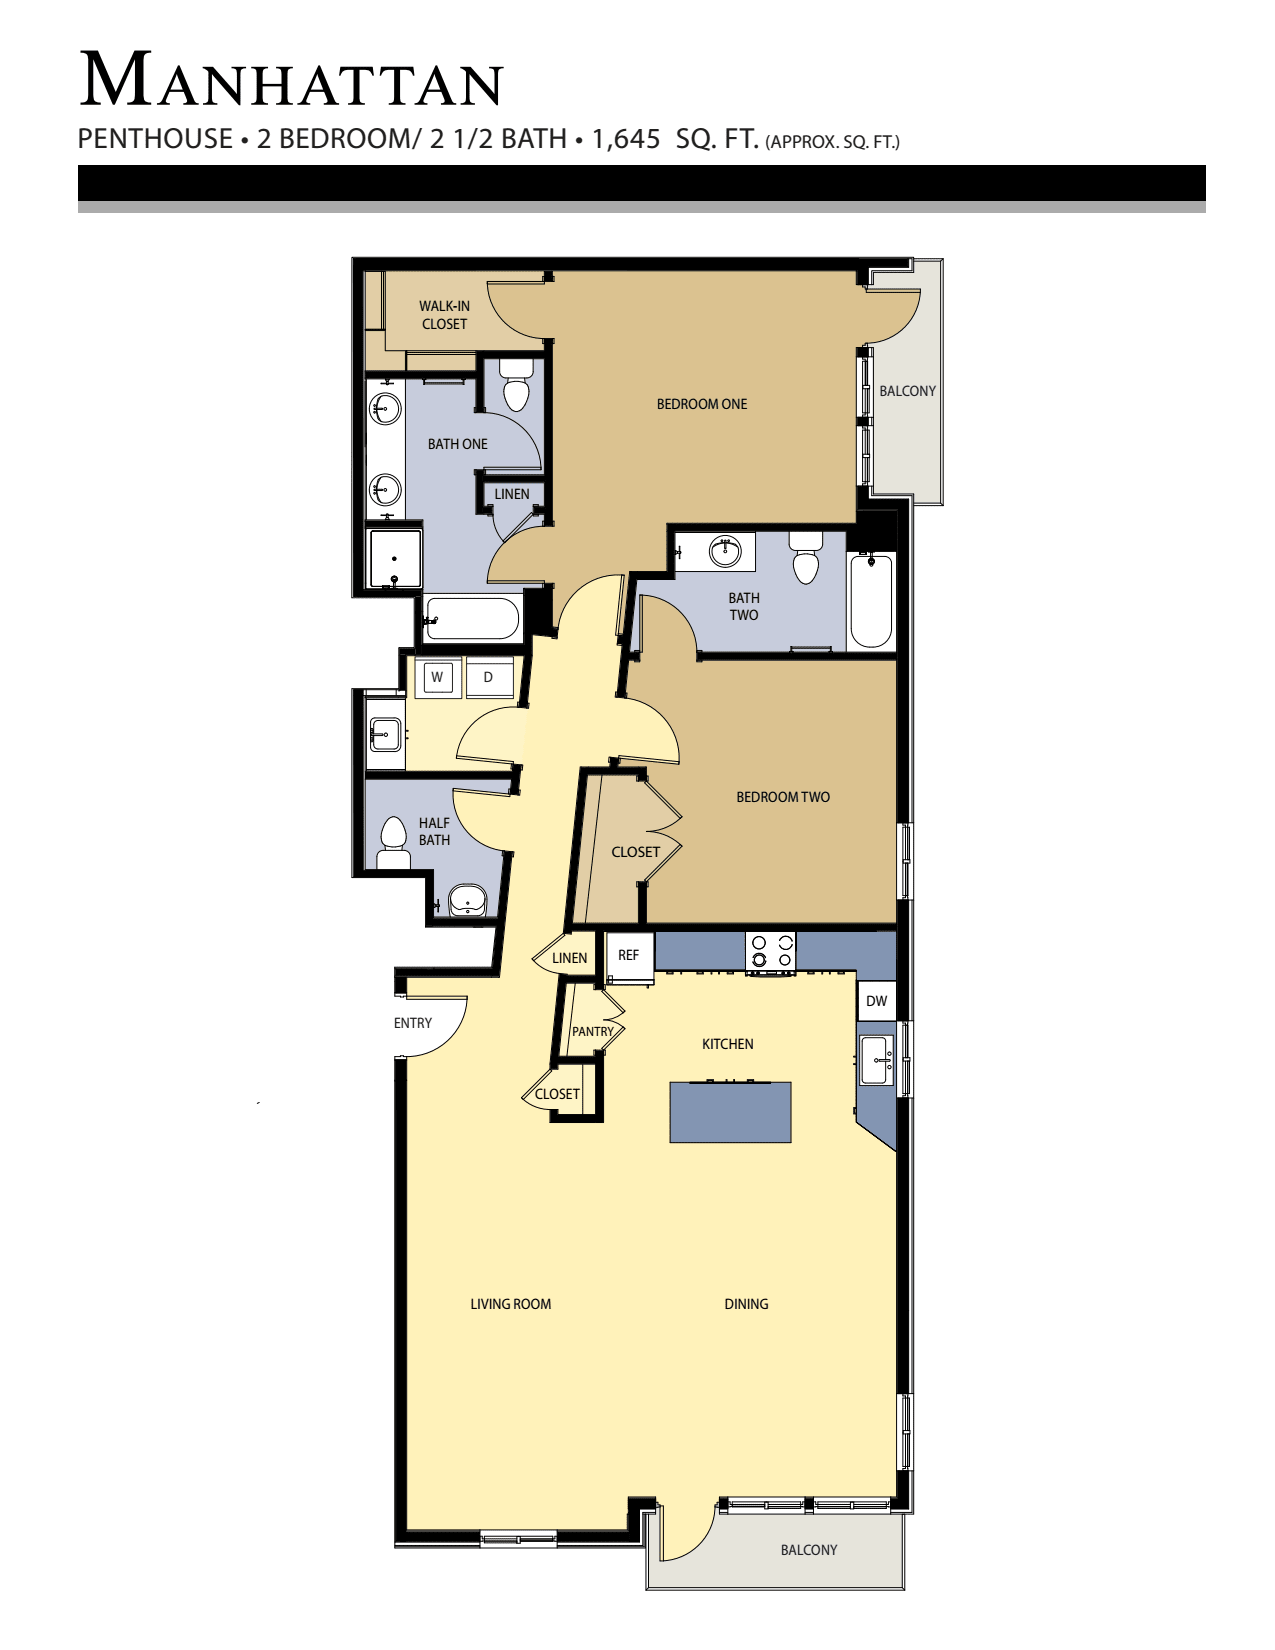 Manhattan floor plan - 2 Bed / 2.5 Bath (1,645 Sq Ft)